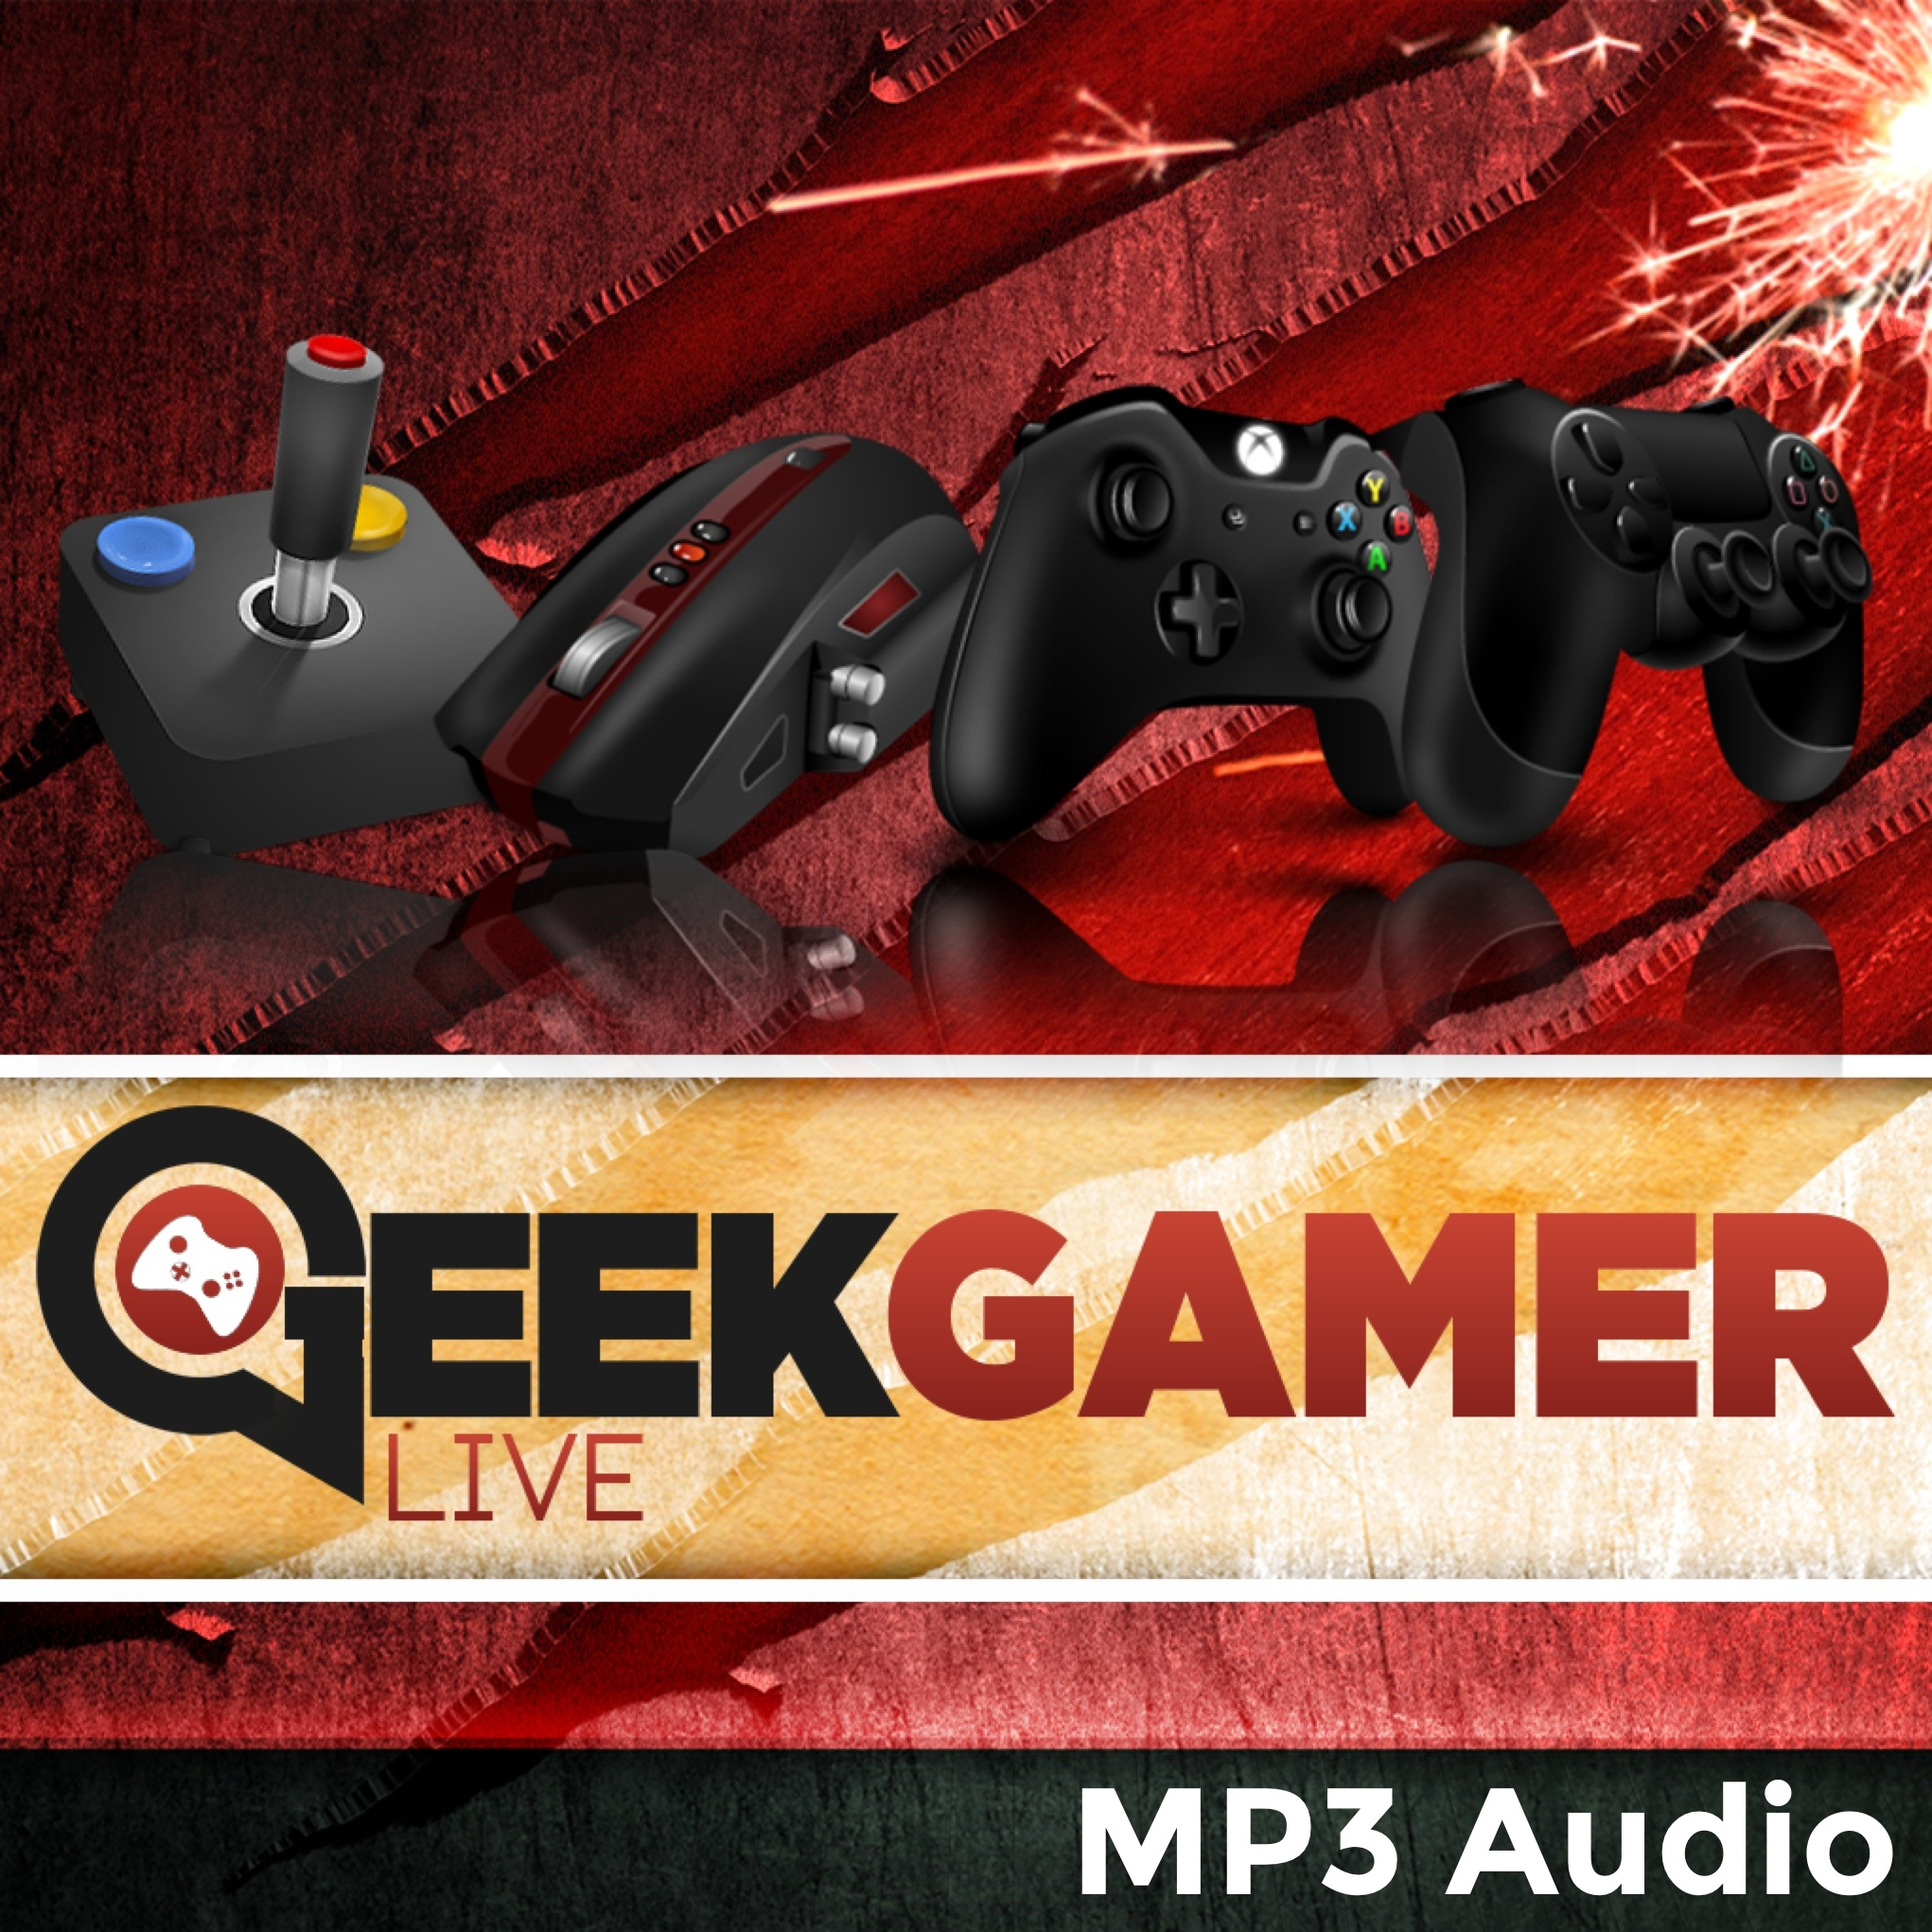 Geek Gamer Live Mp3 By Geekgamer On Apple Podcasts